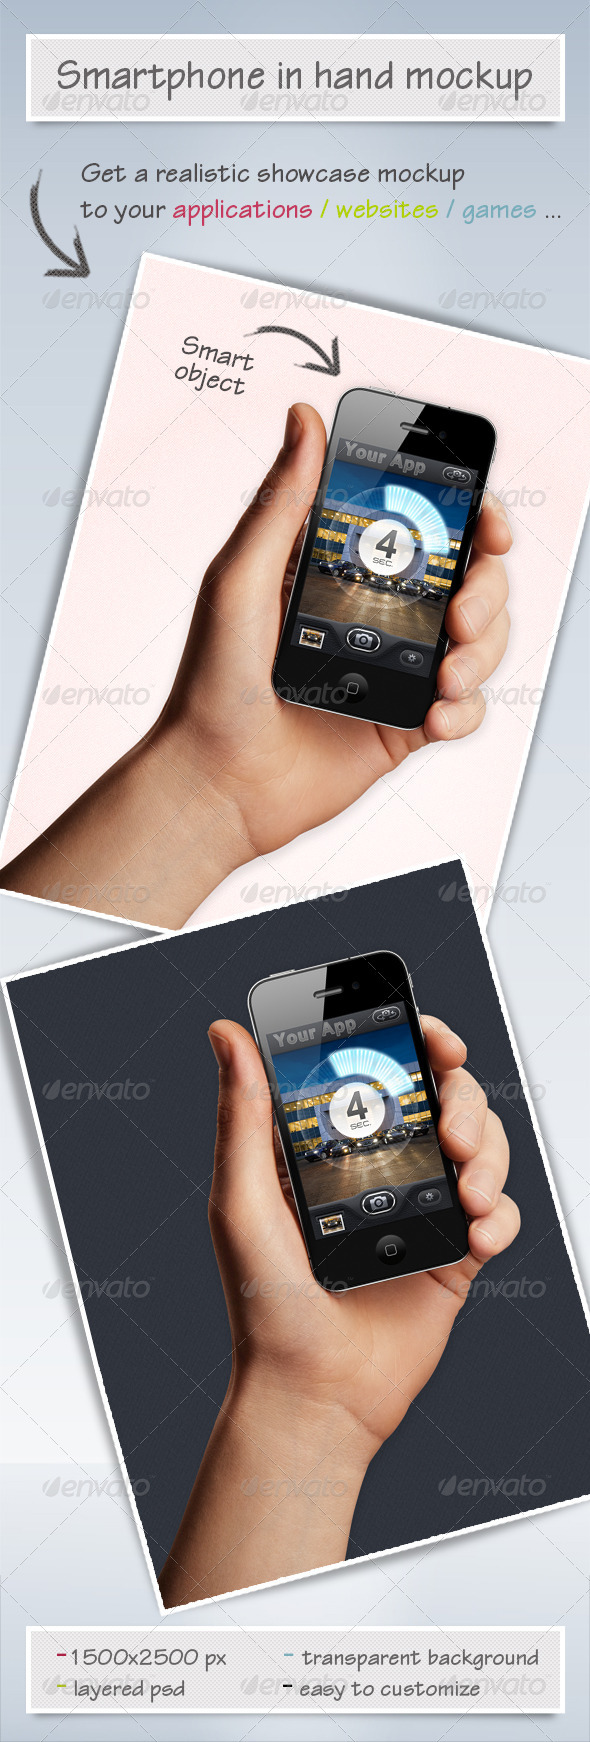 GraphicRiver Mobile Phone in Hand Mock-up 2827850